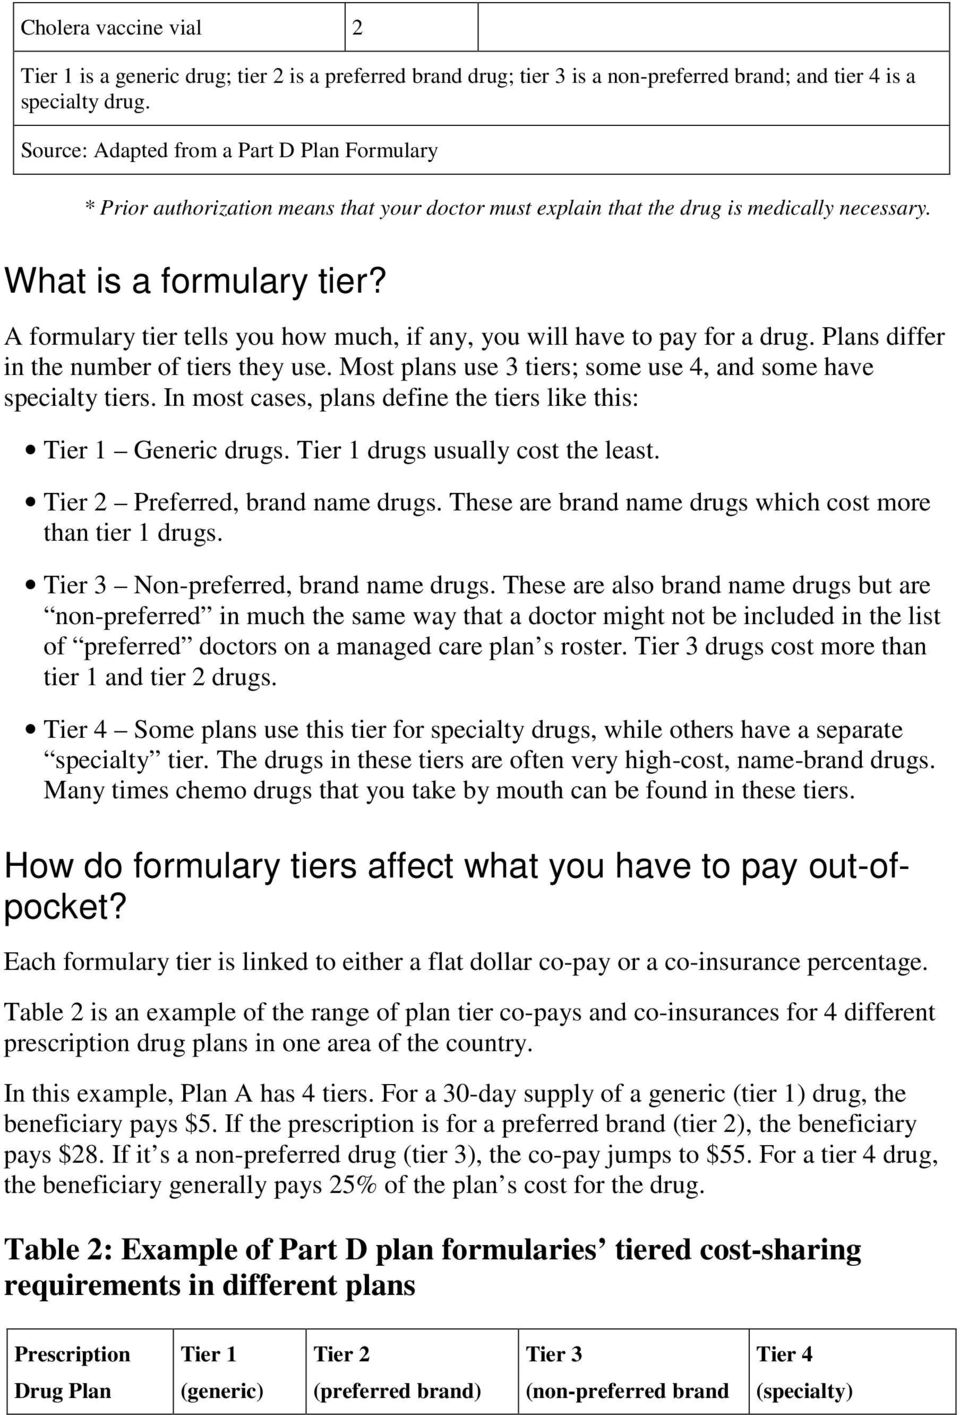 A formulary tier tells you how much, if any, you will have to pay for a drug. Plans differ in the number of tiers they use. Most plans use 3 tiers; some use 4, and some have specialty tiers.